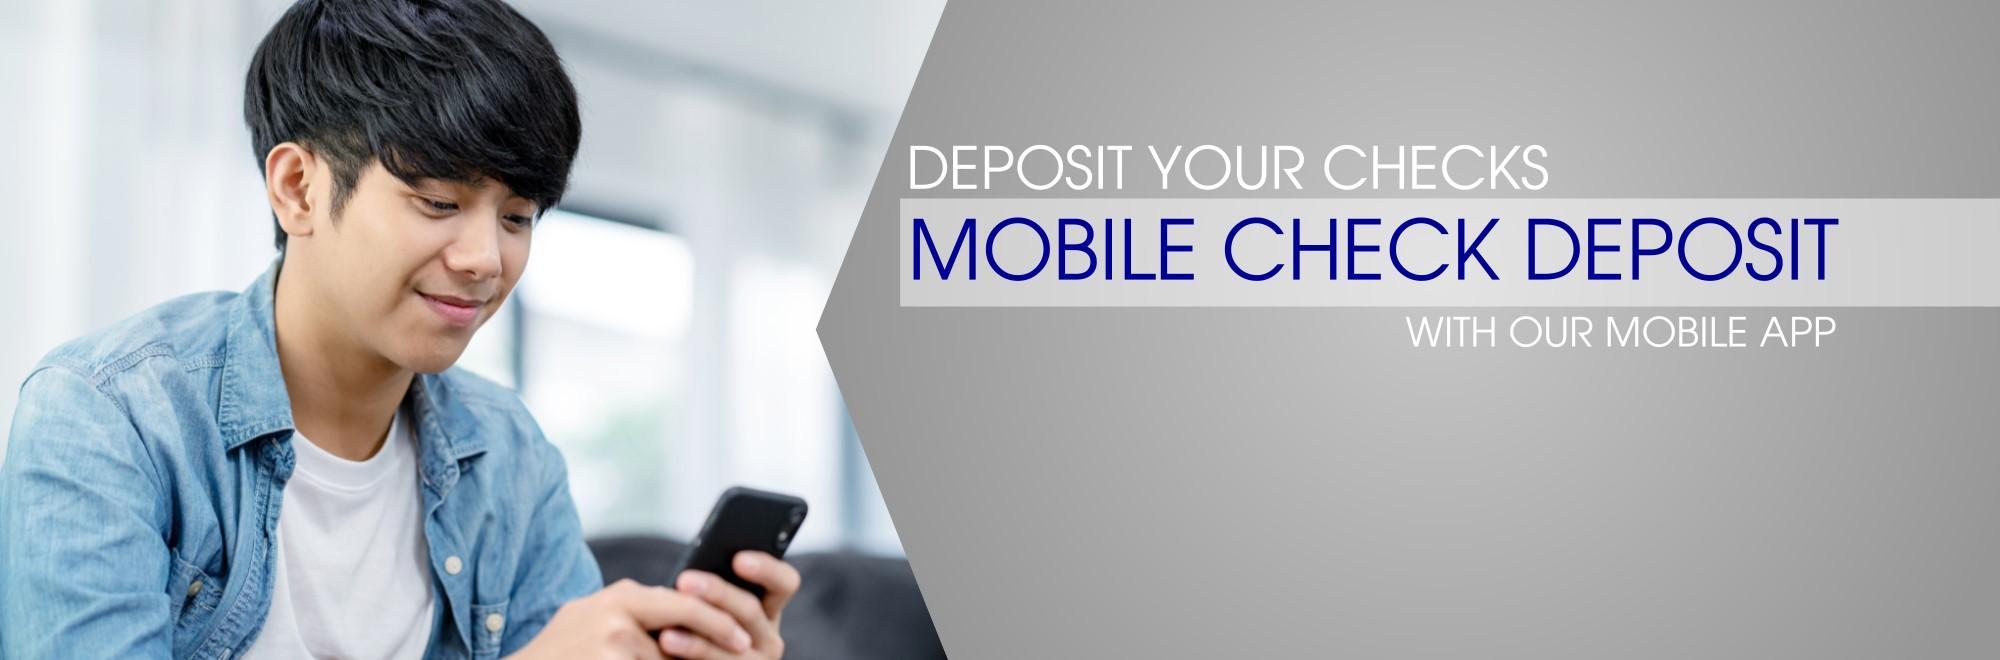 watch the mobile ck deposit video